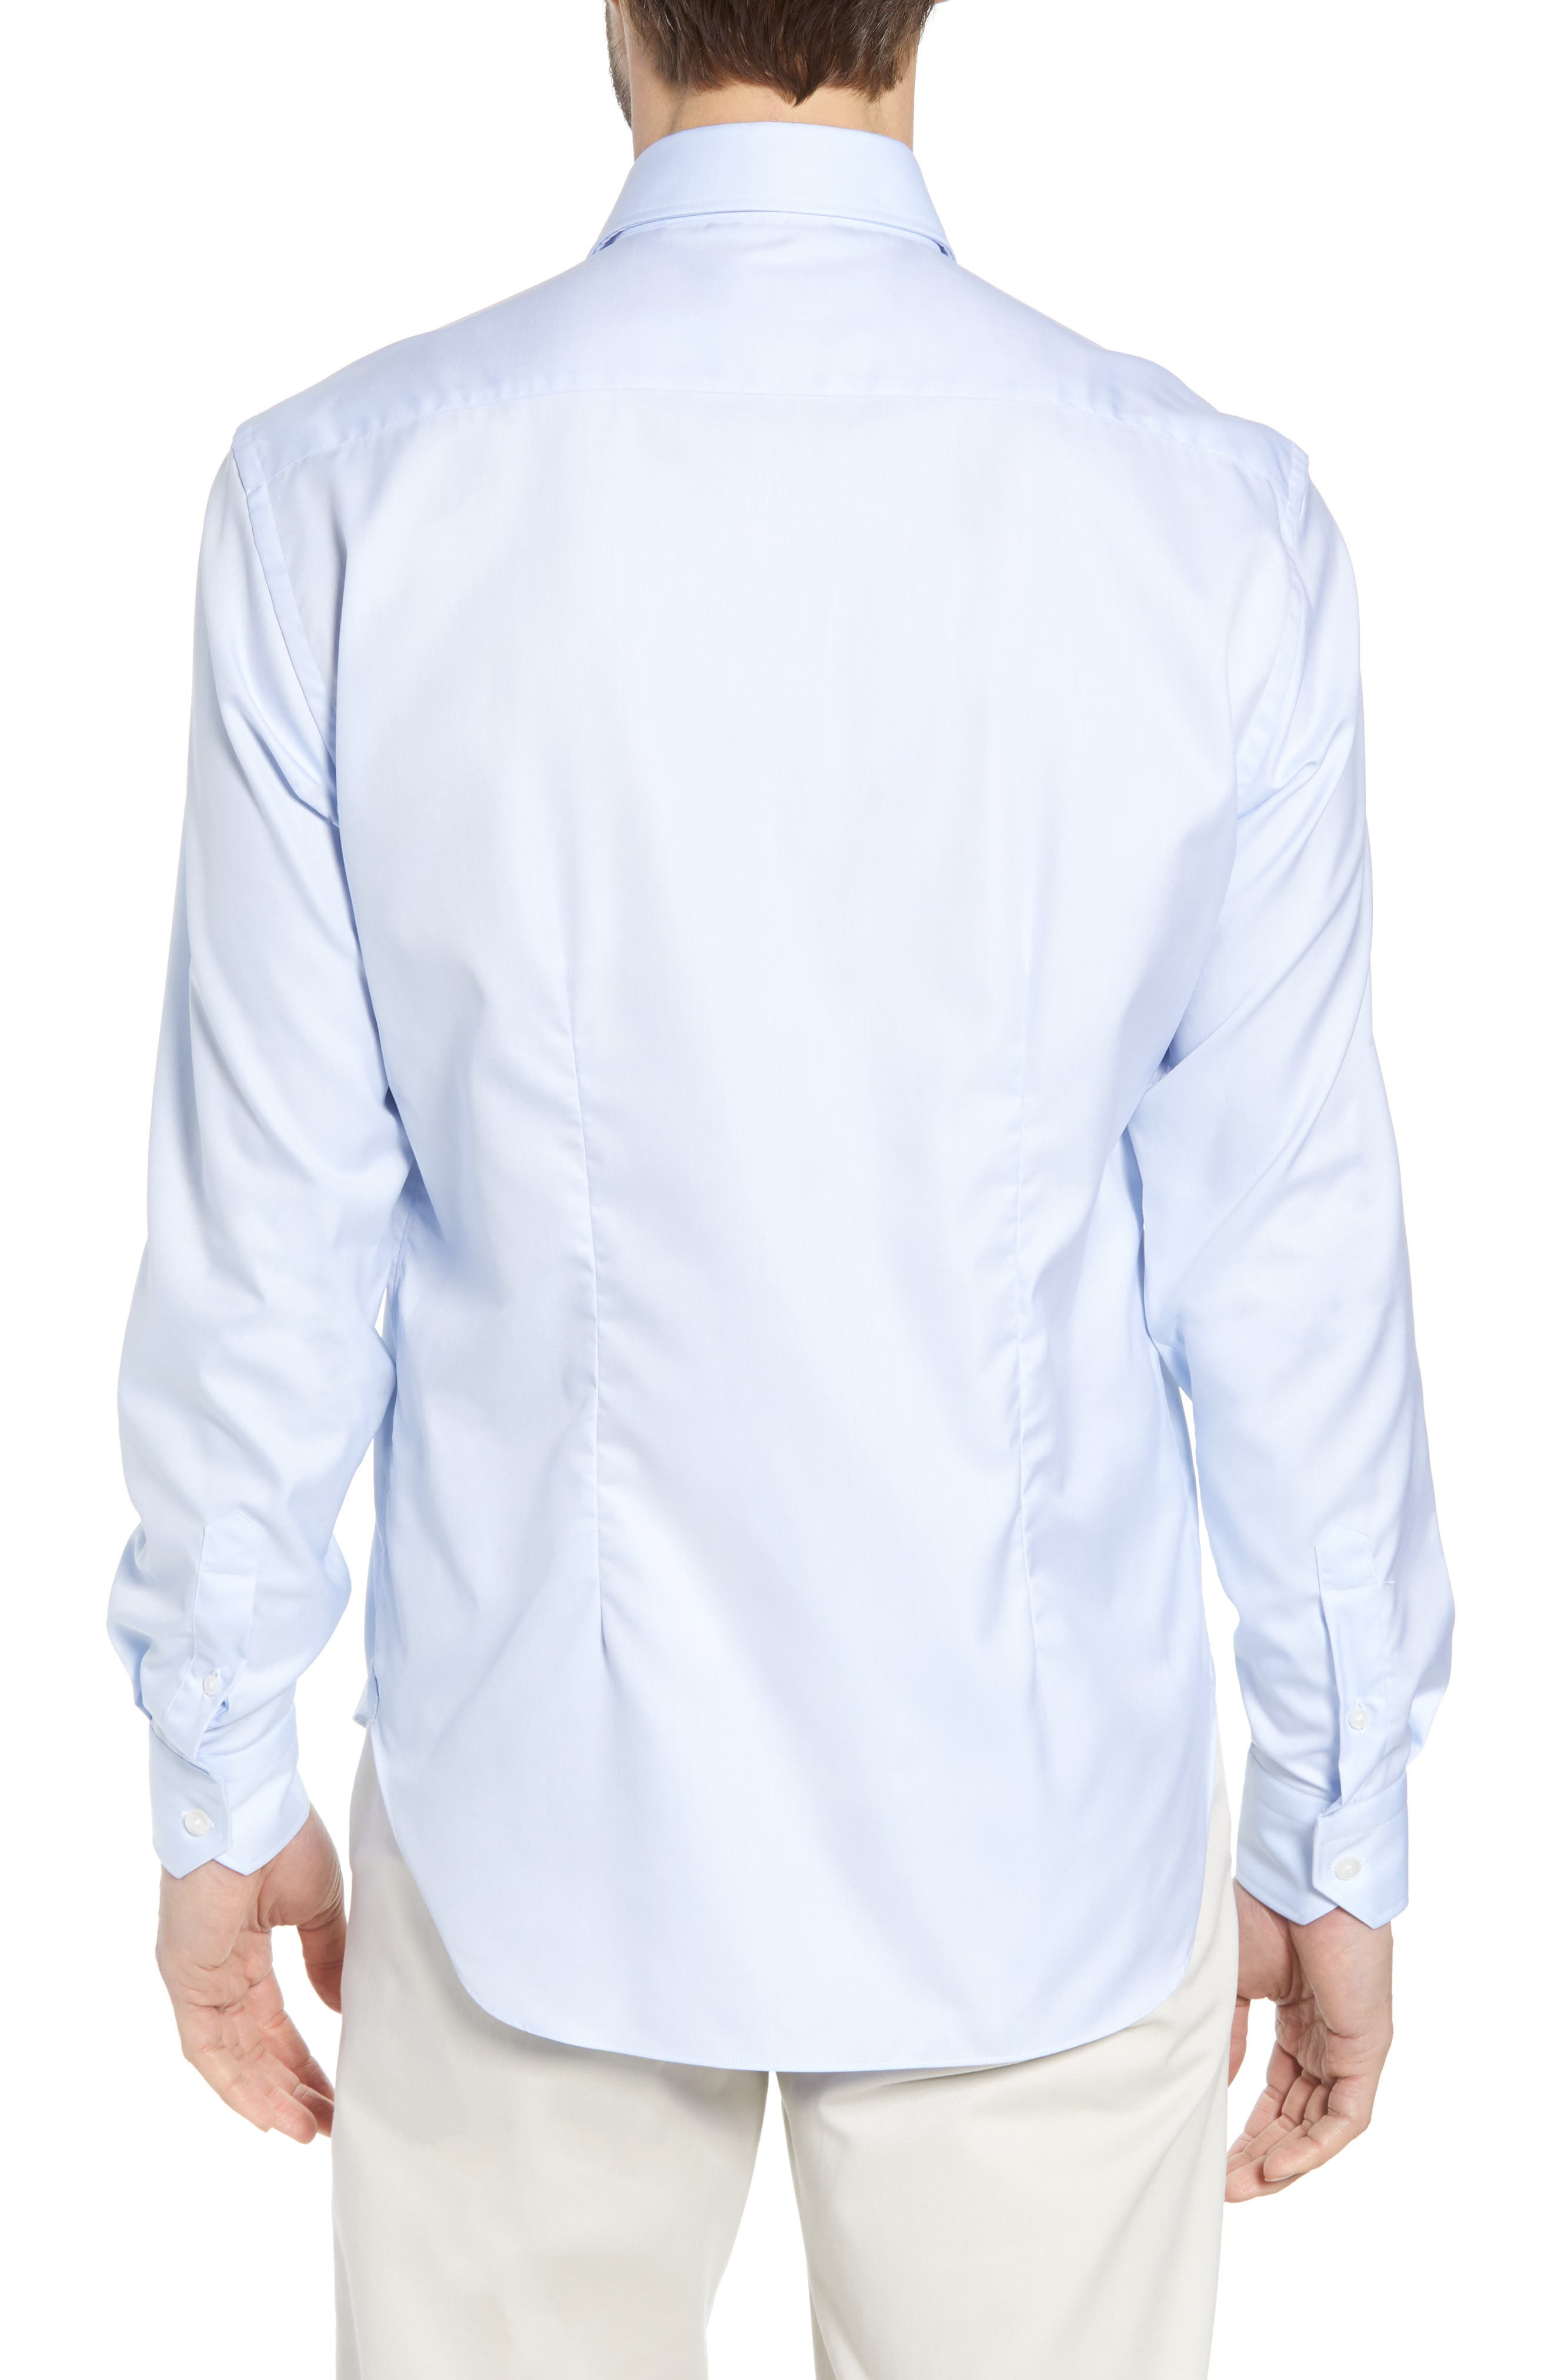 Crease Free Extra Soft Sport Shirt,                             Alternate thumbnail 2, color,